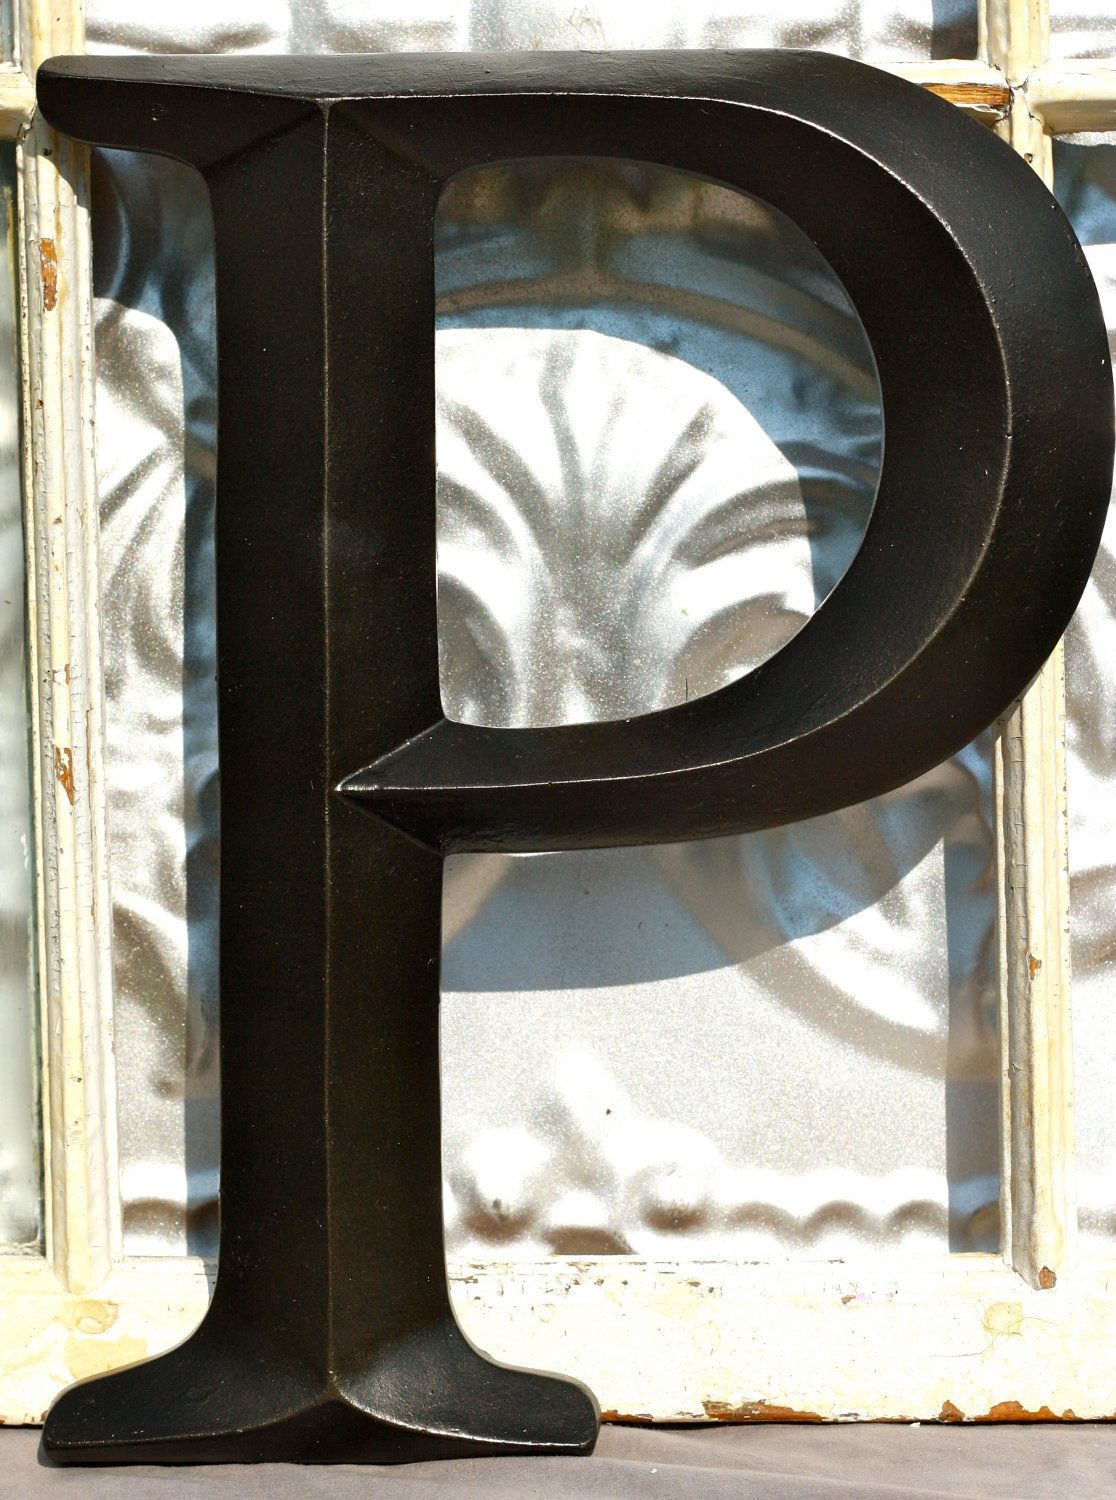 Large Letter P Sign Wall Decor Oil Rubbed Bronze Initial Wedding Photo Booth Nursery Mantel Urban 24 95 Via Etsy